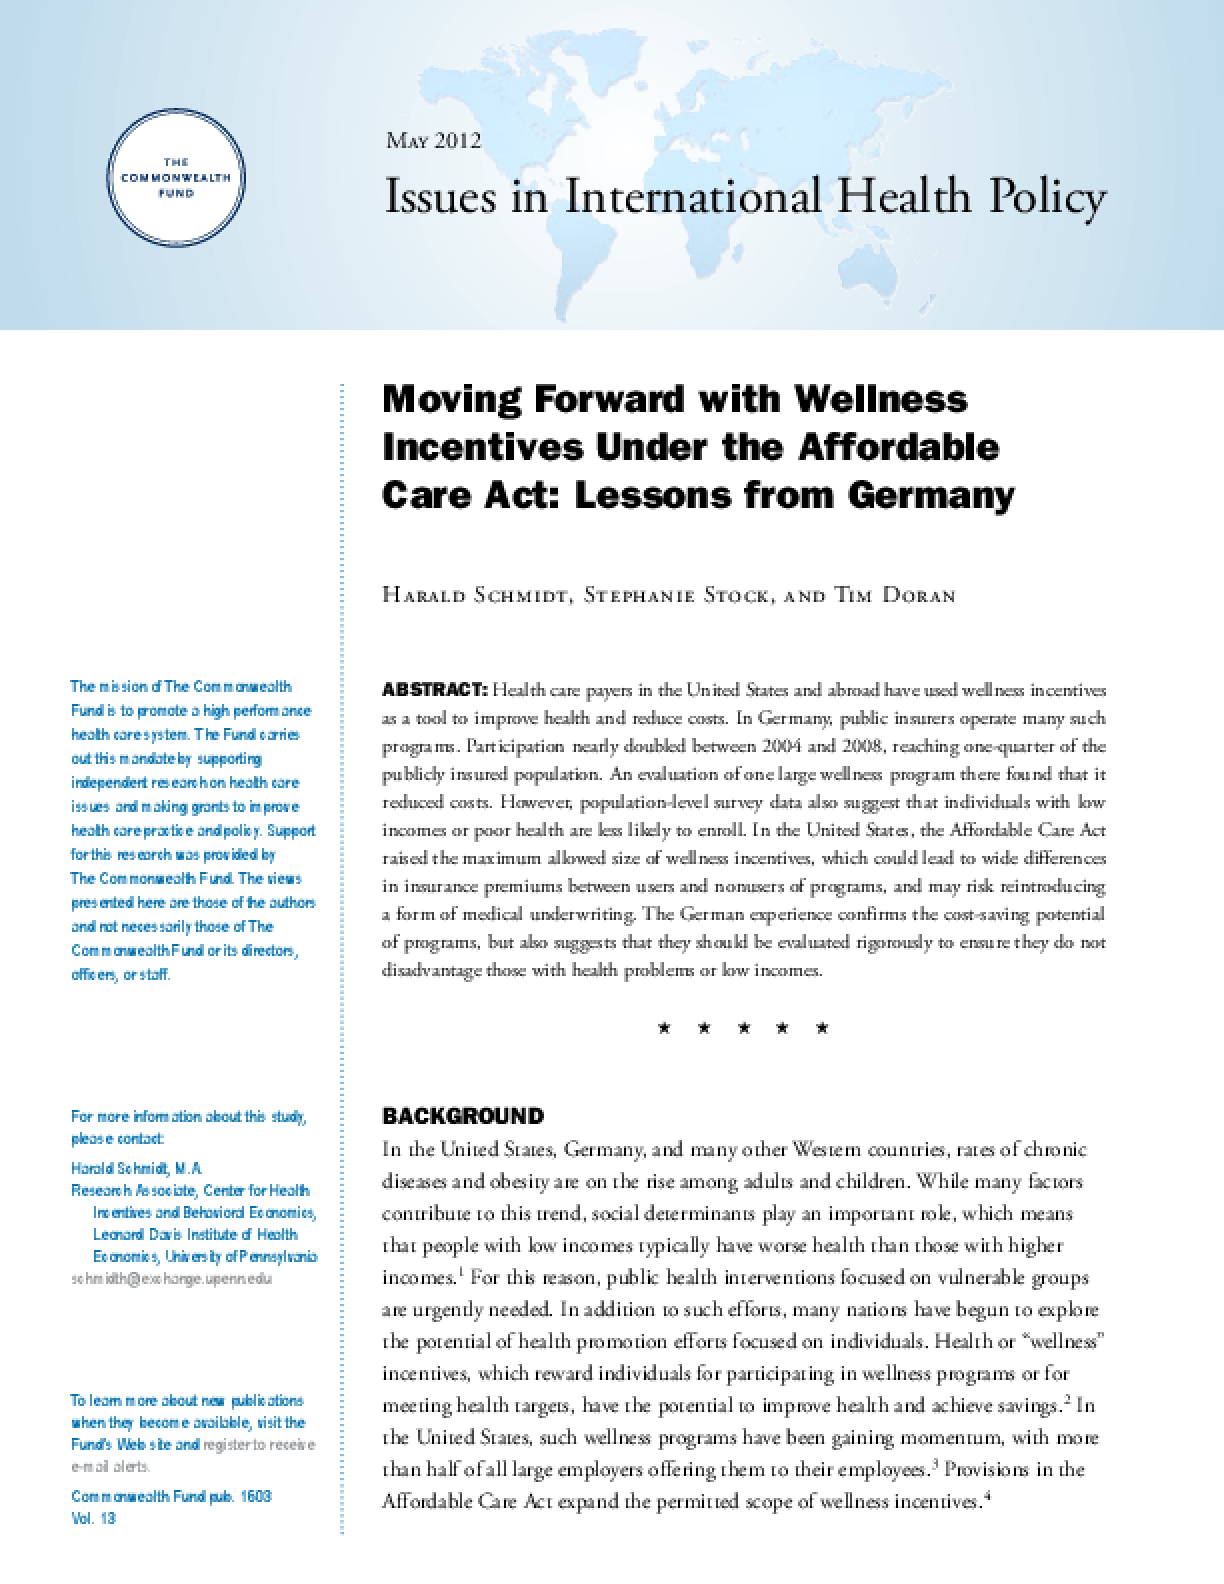 Moving Forward With Wellness Incentives Under the Affordable Care Act: Lessons From Germany